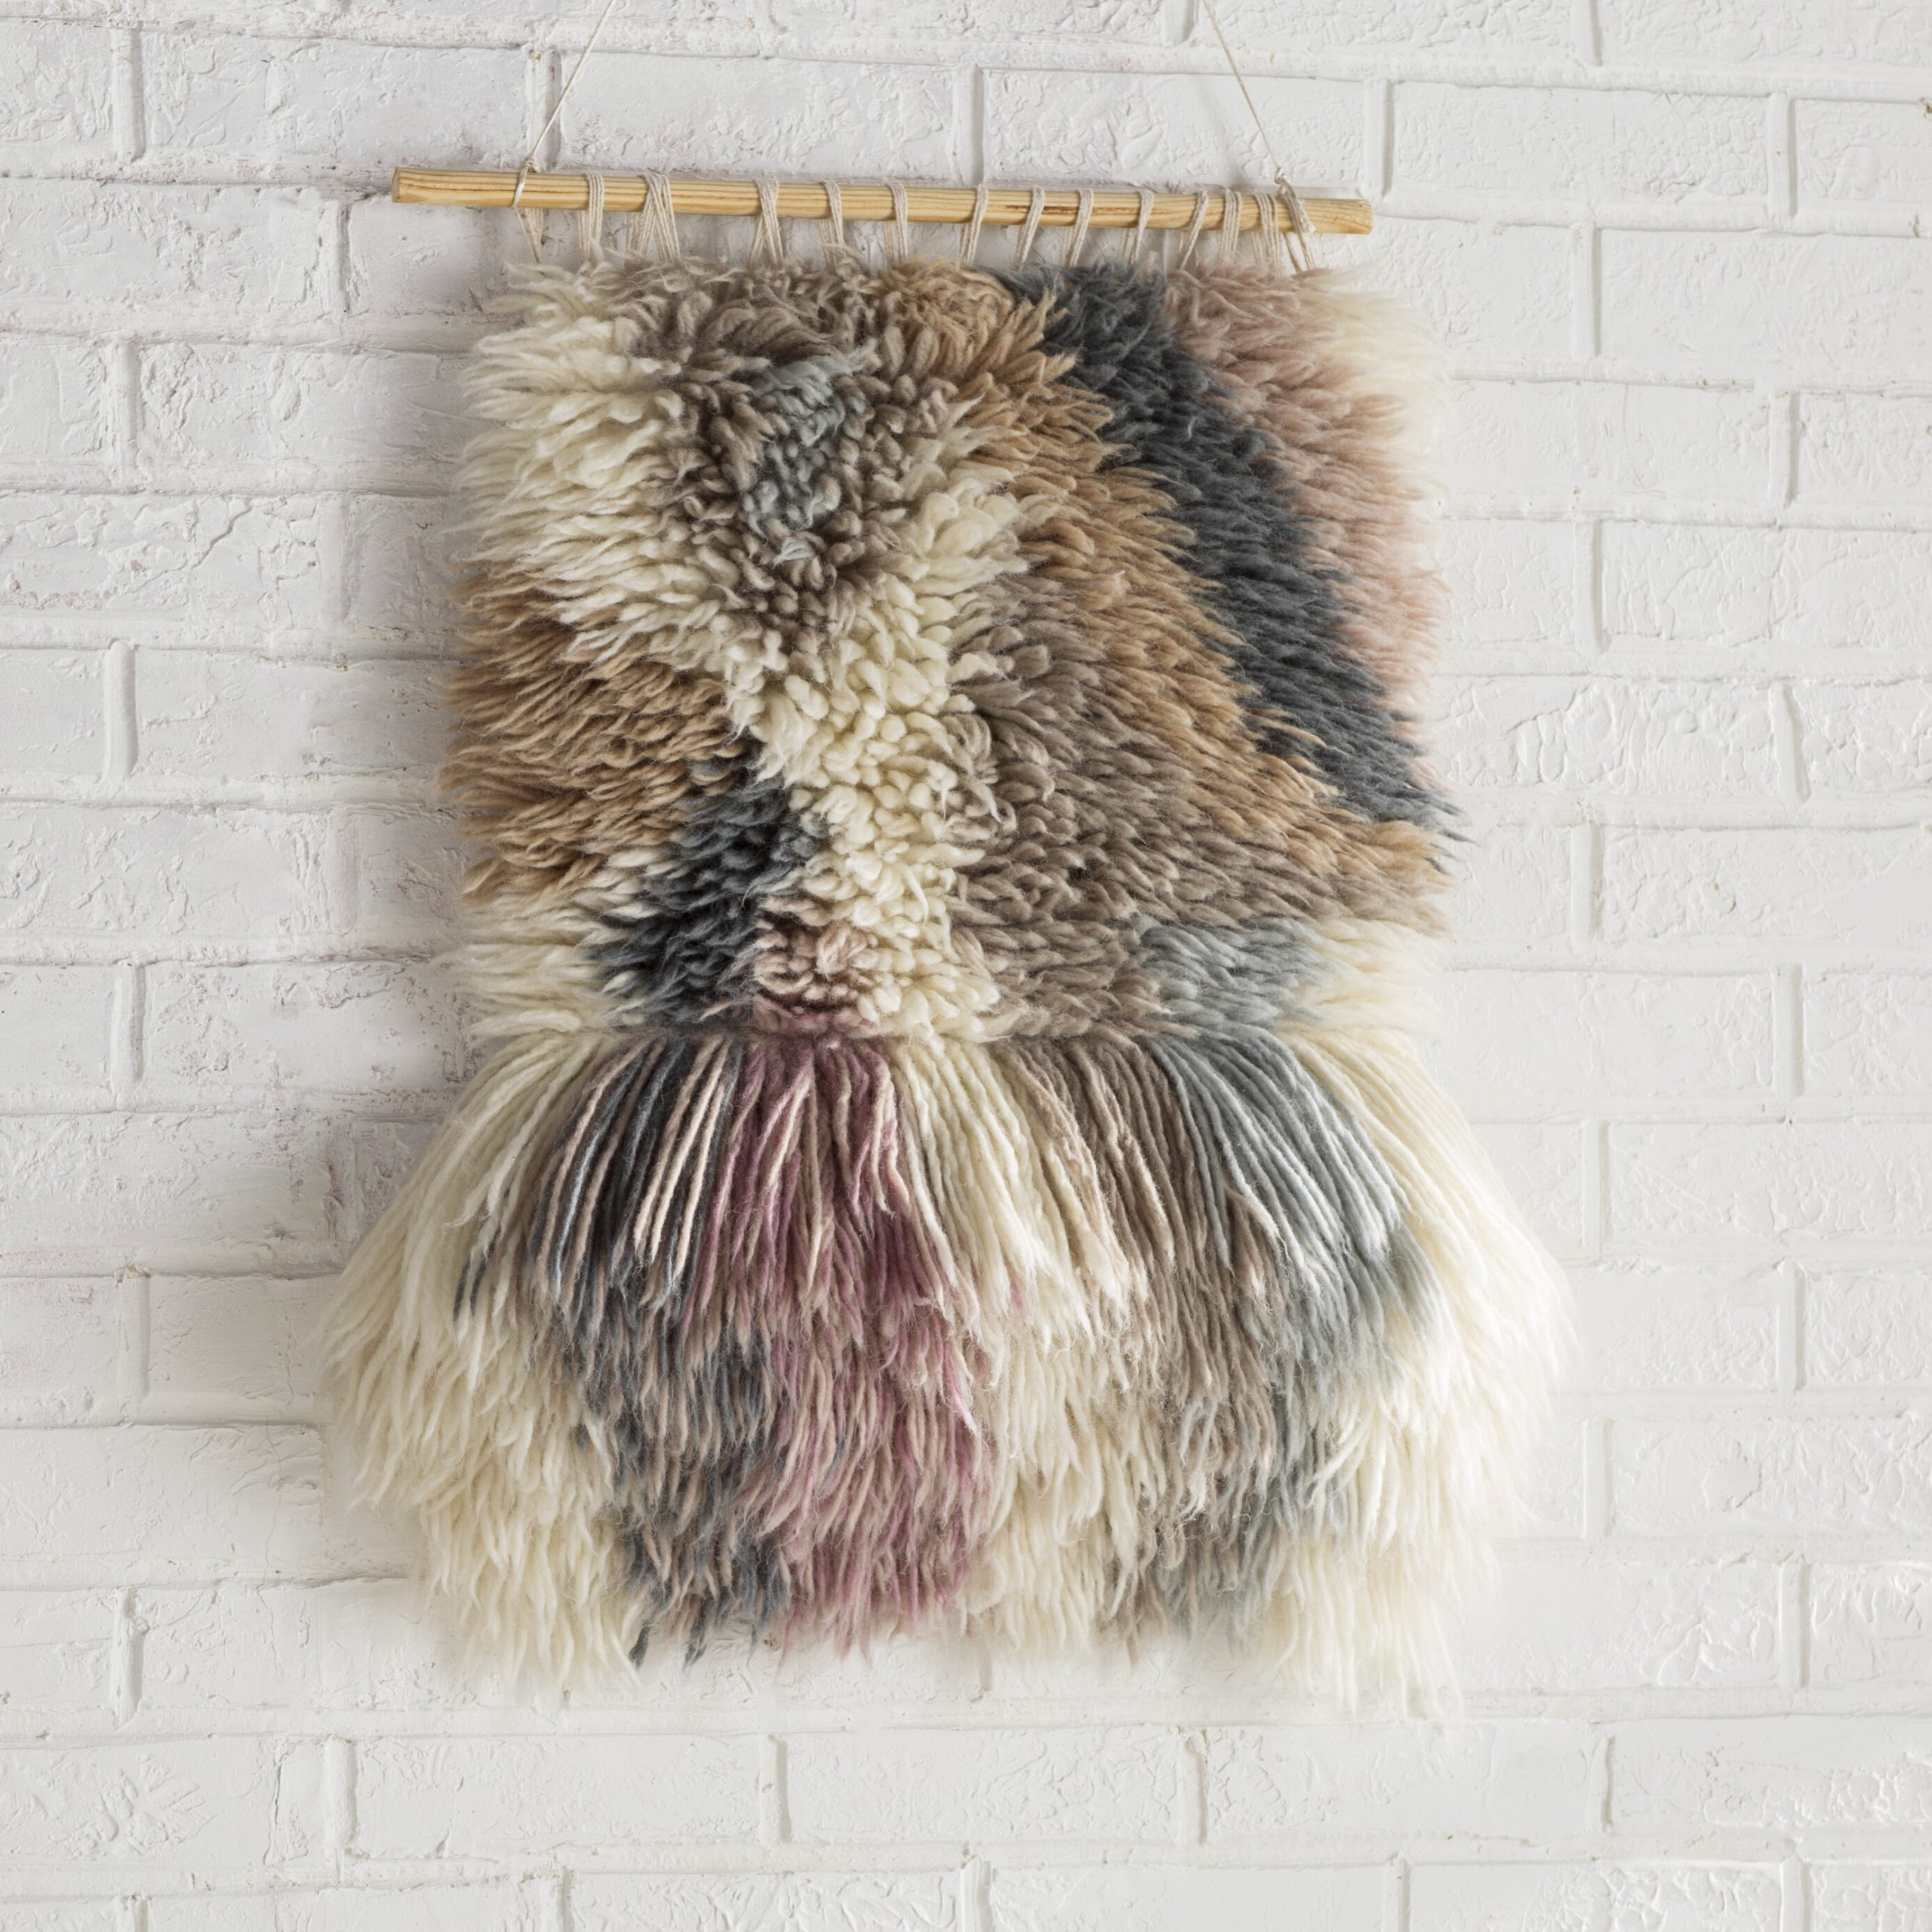 Contemporary Hand Woven Wall Hanging Regarding Most Recent Blended Fabric Saber Wall Hangings With Rod (View 16 of 20)